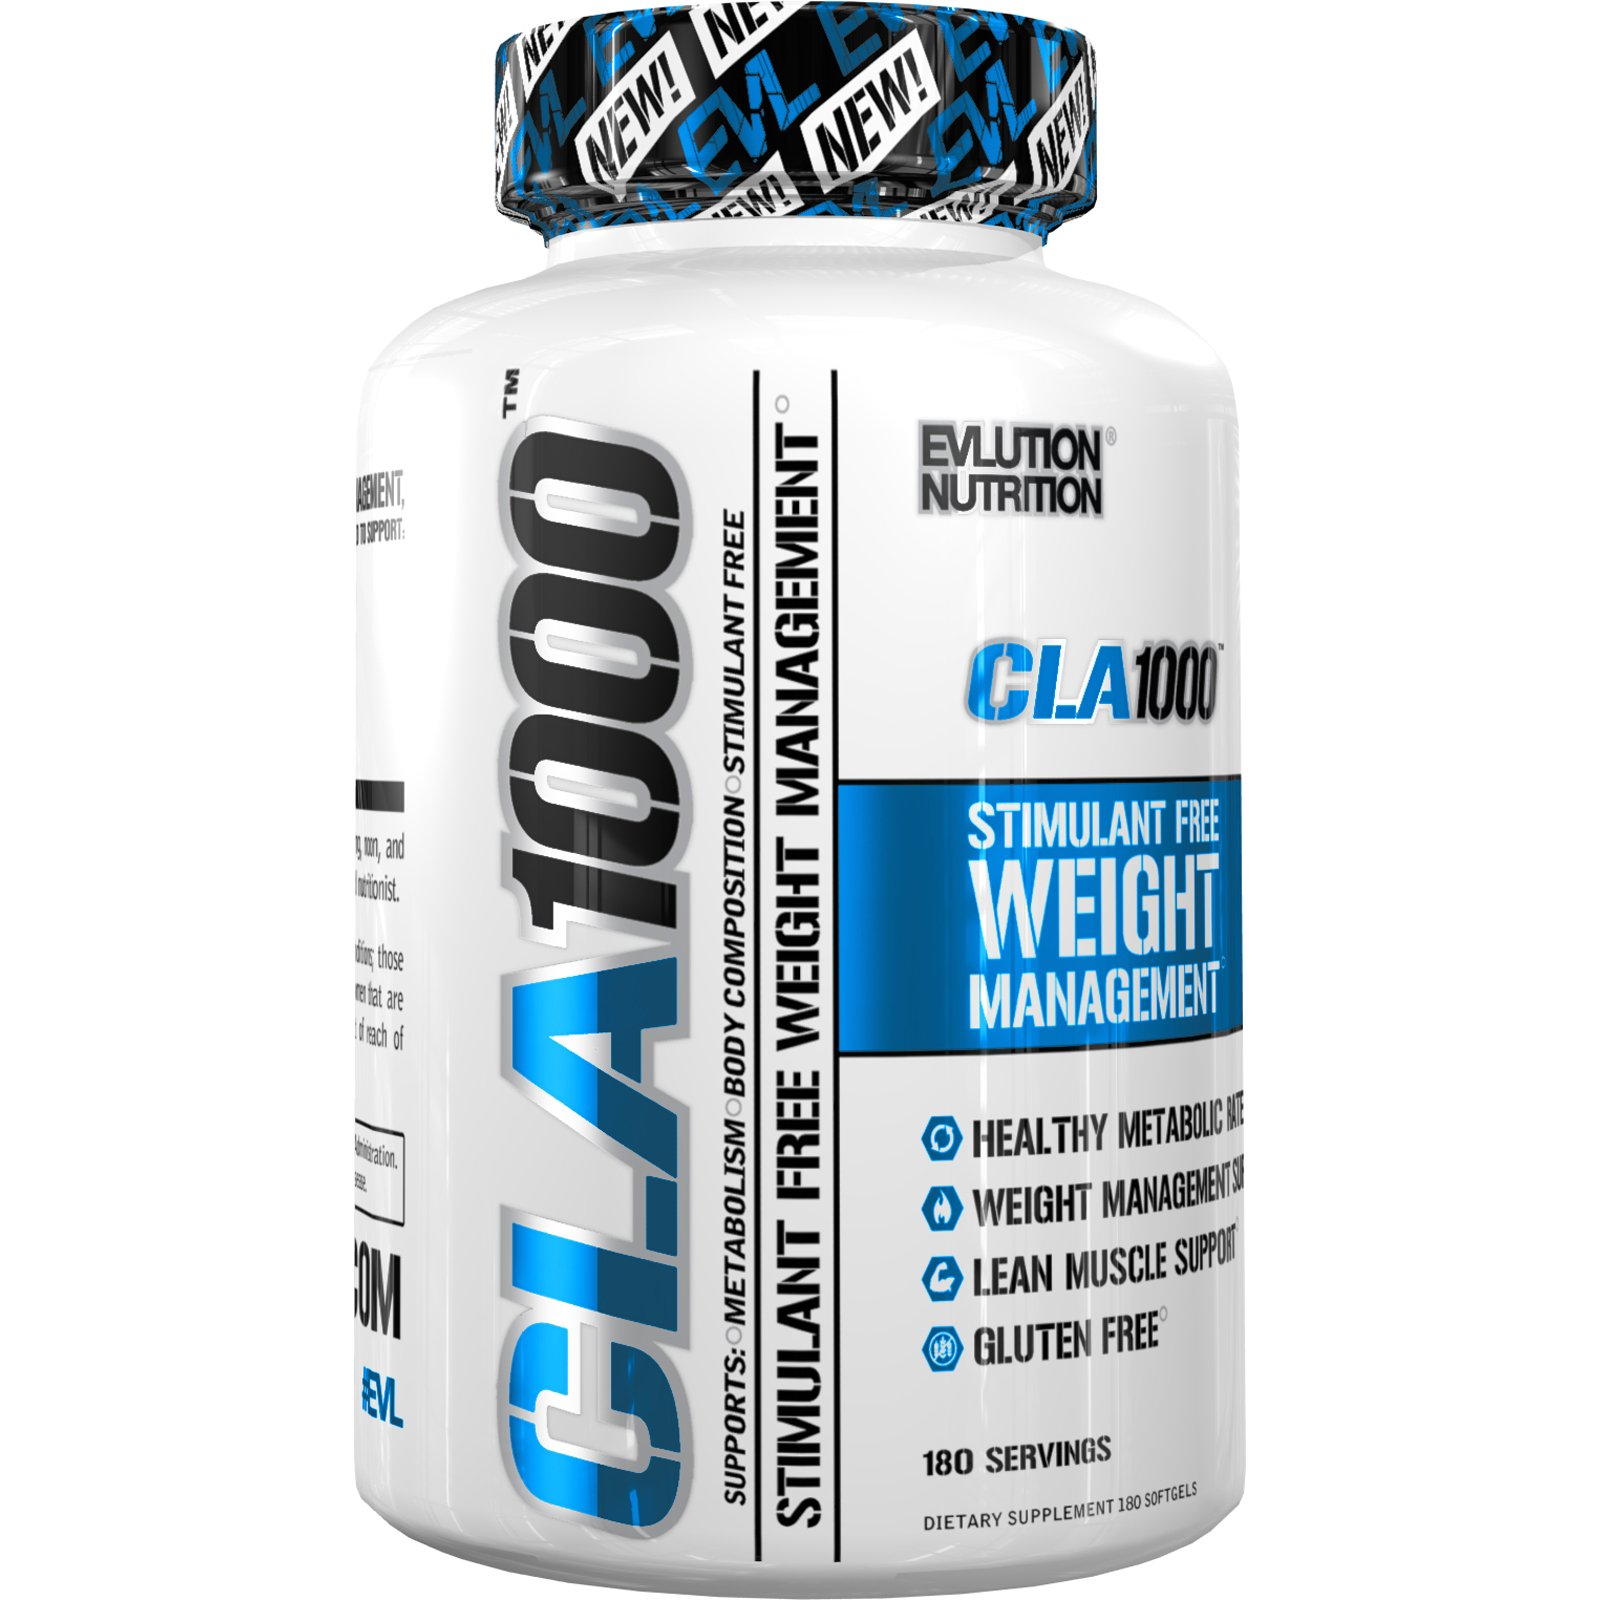 Evlution Nutrition CLA 1000 Conjugated Linoleic Acid, Soft Gel, Weight Loss Supplement, Stimulant-Free (180 Servings)